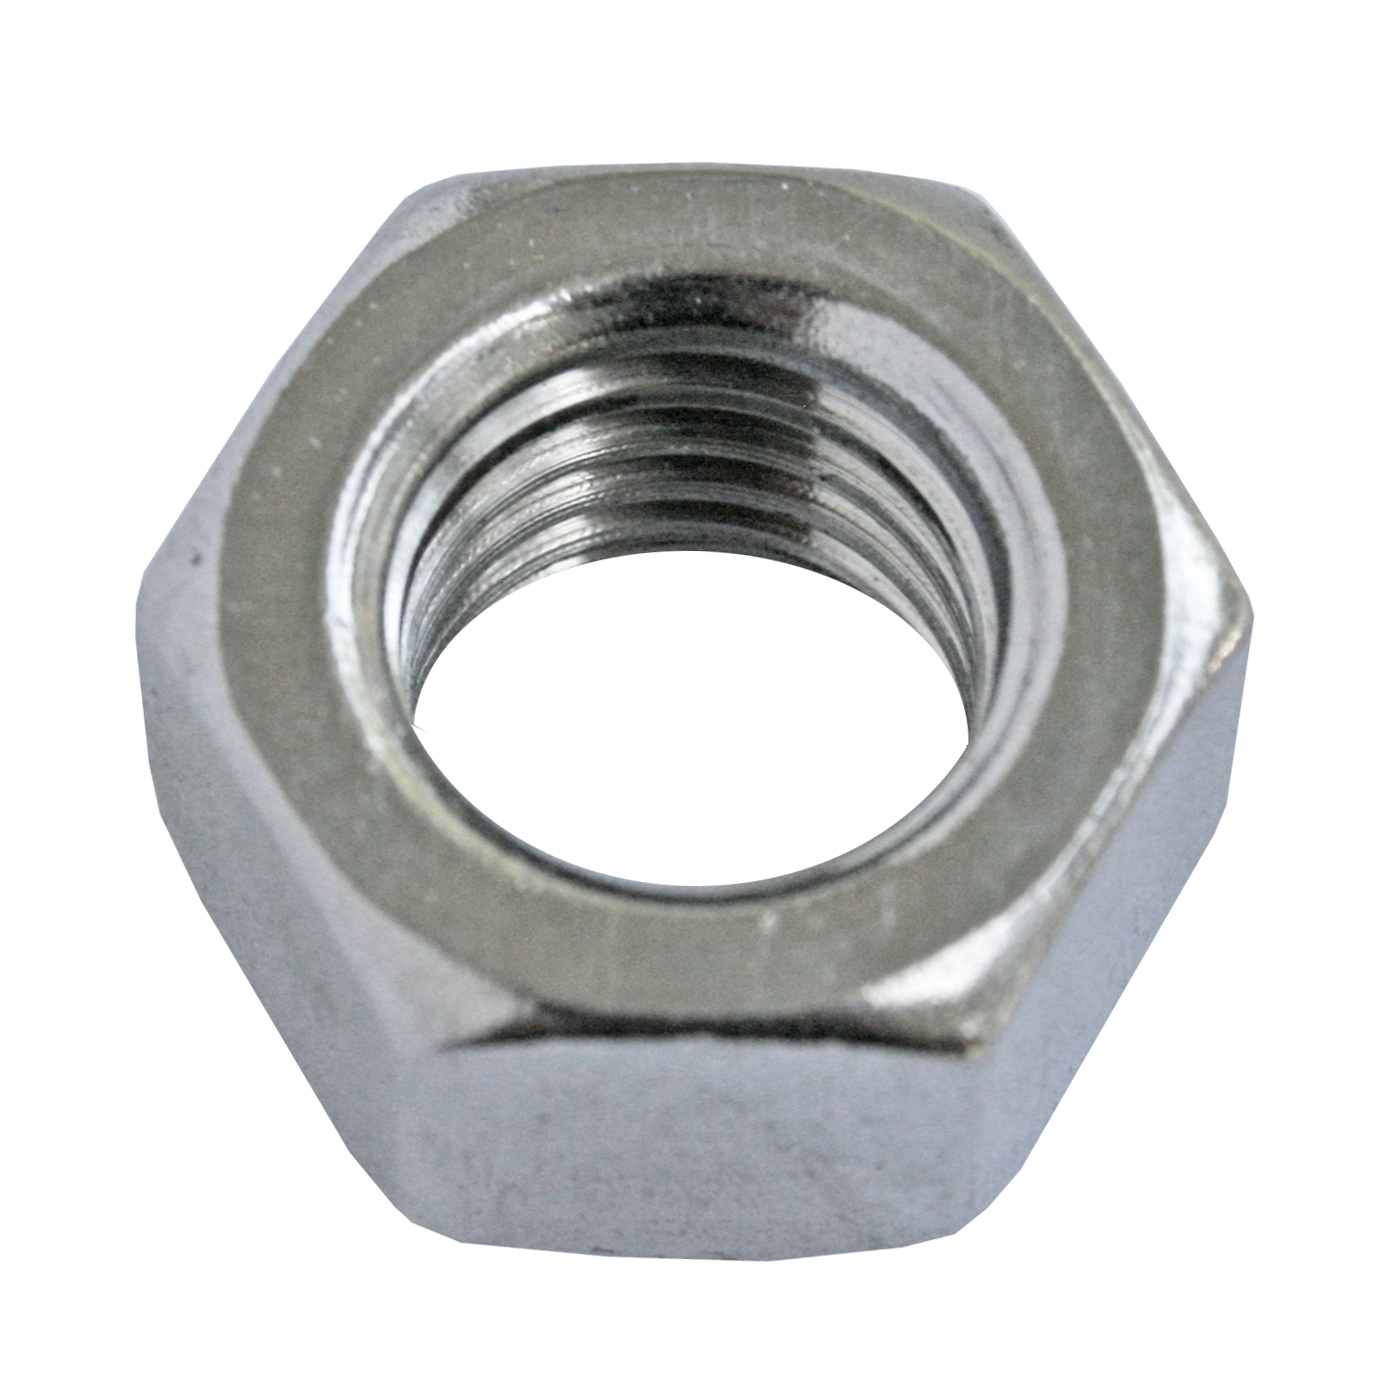 STAINLESS STEEL HEX NUT USS